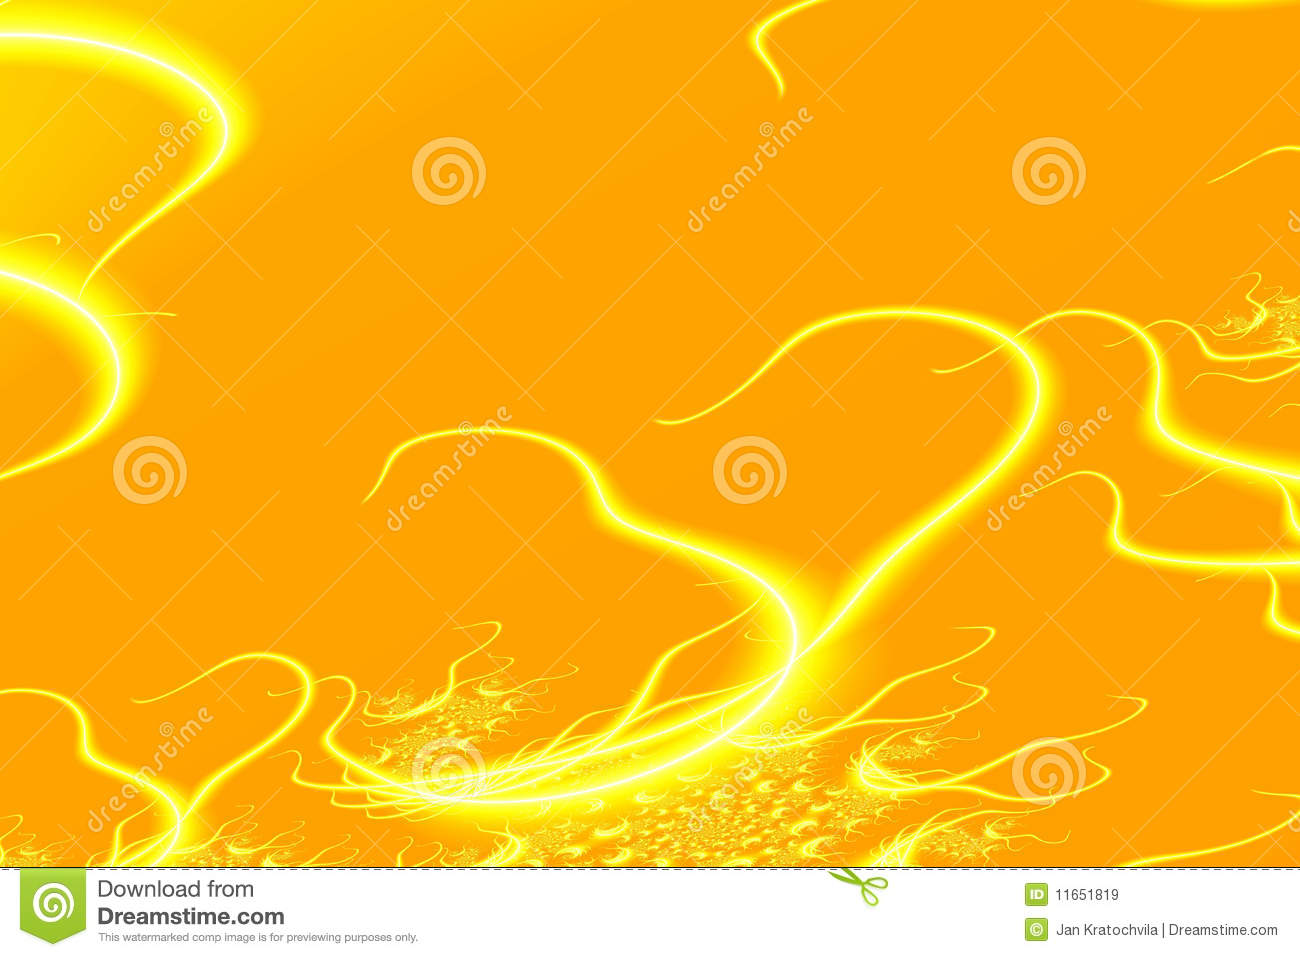 Abstract yellow background with hearts